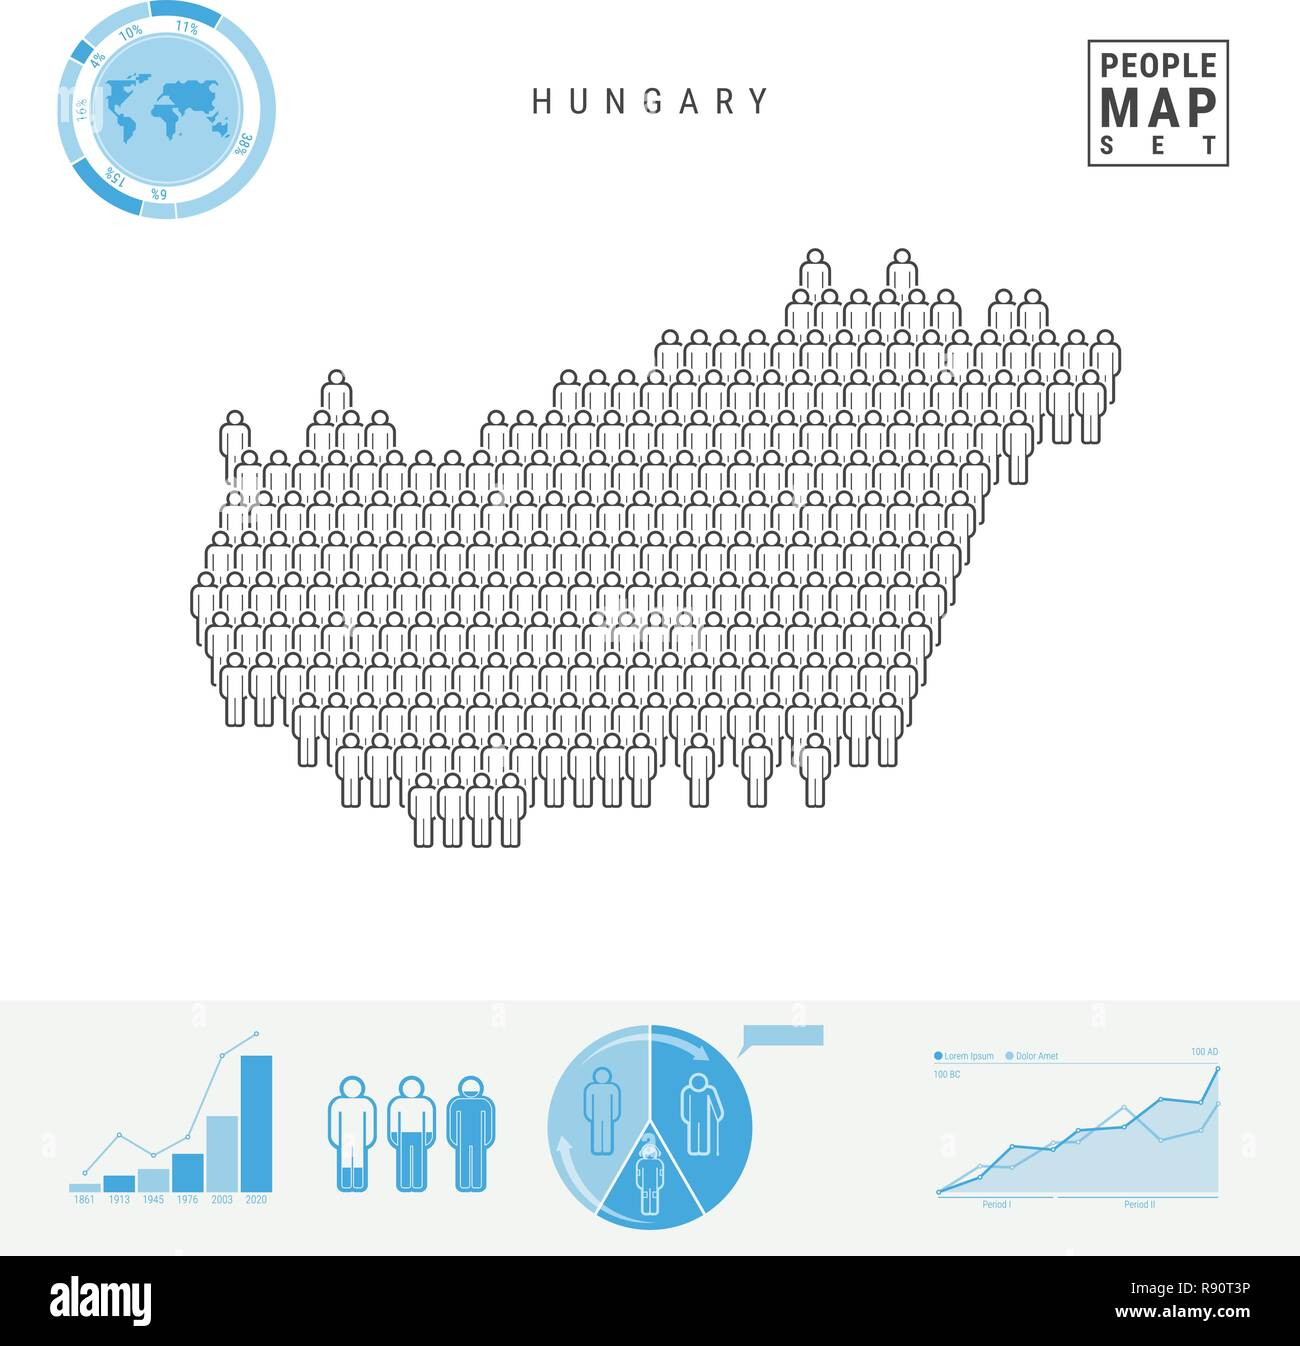 Hungary People Icon Map  Stylized Vector Silhouette of